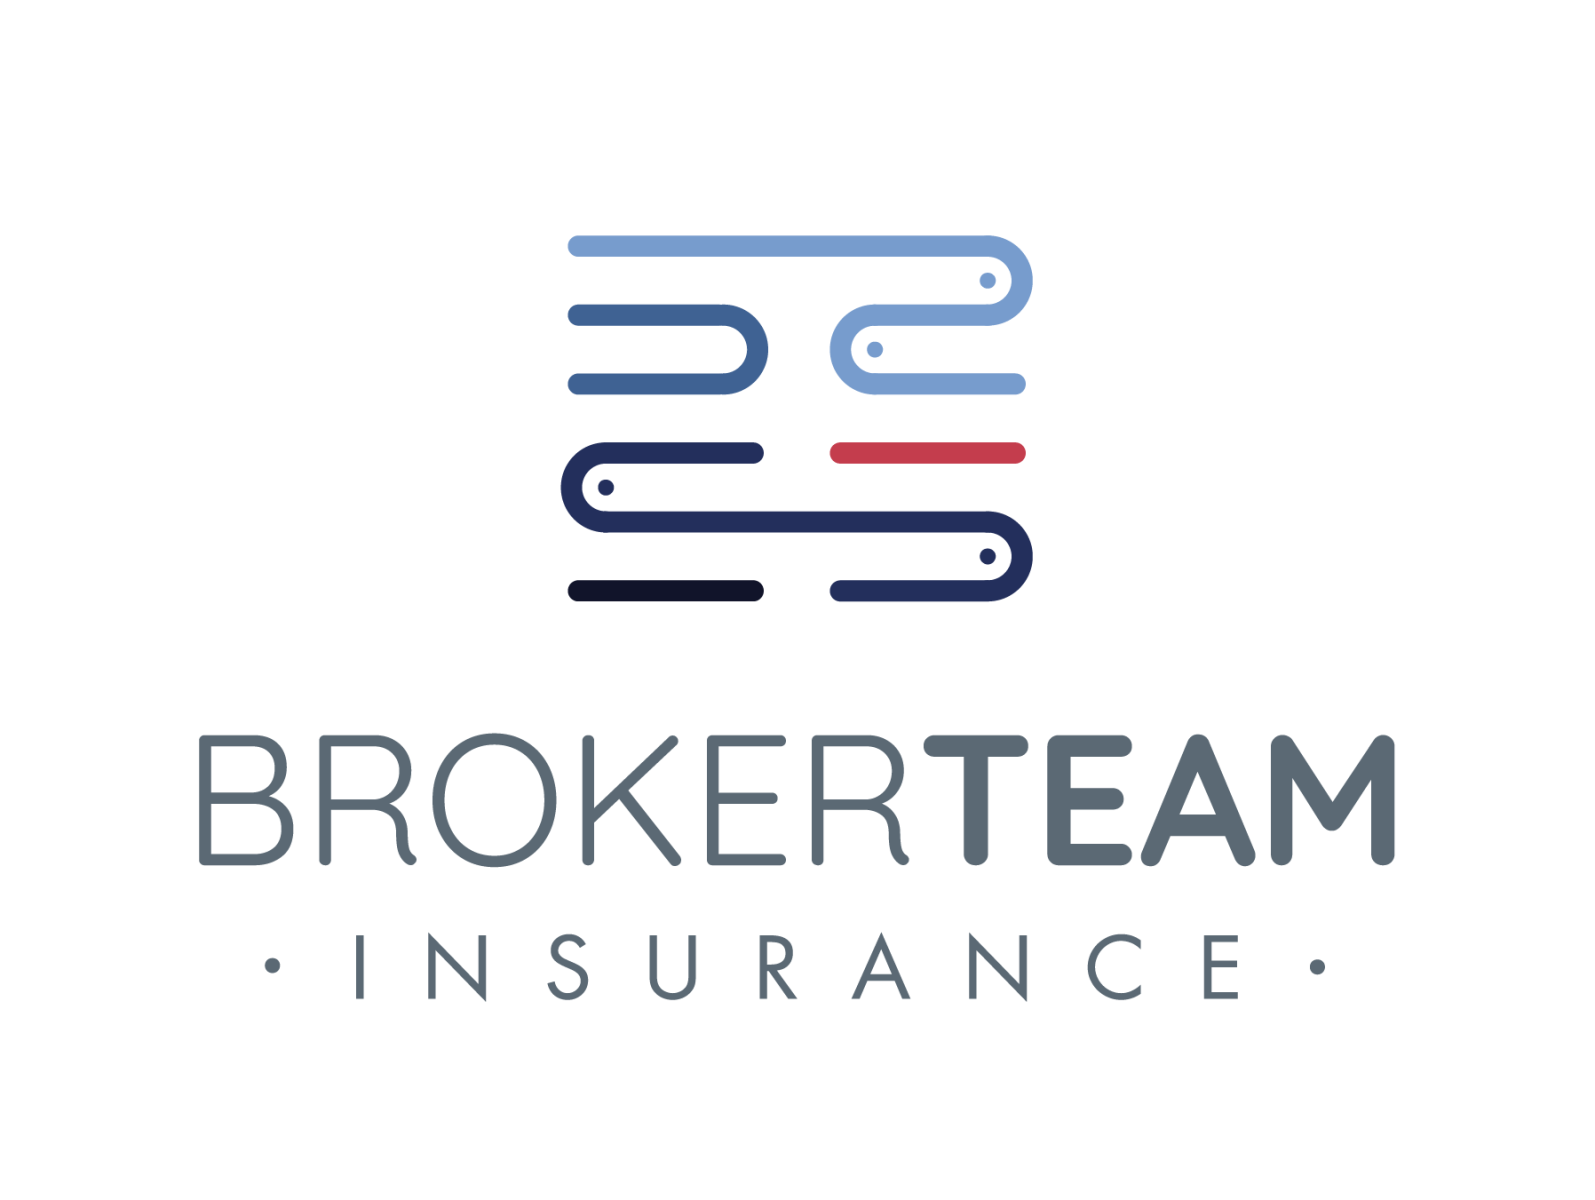 BrokerTeam